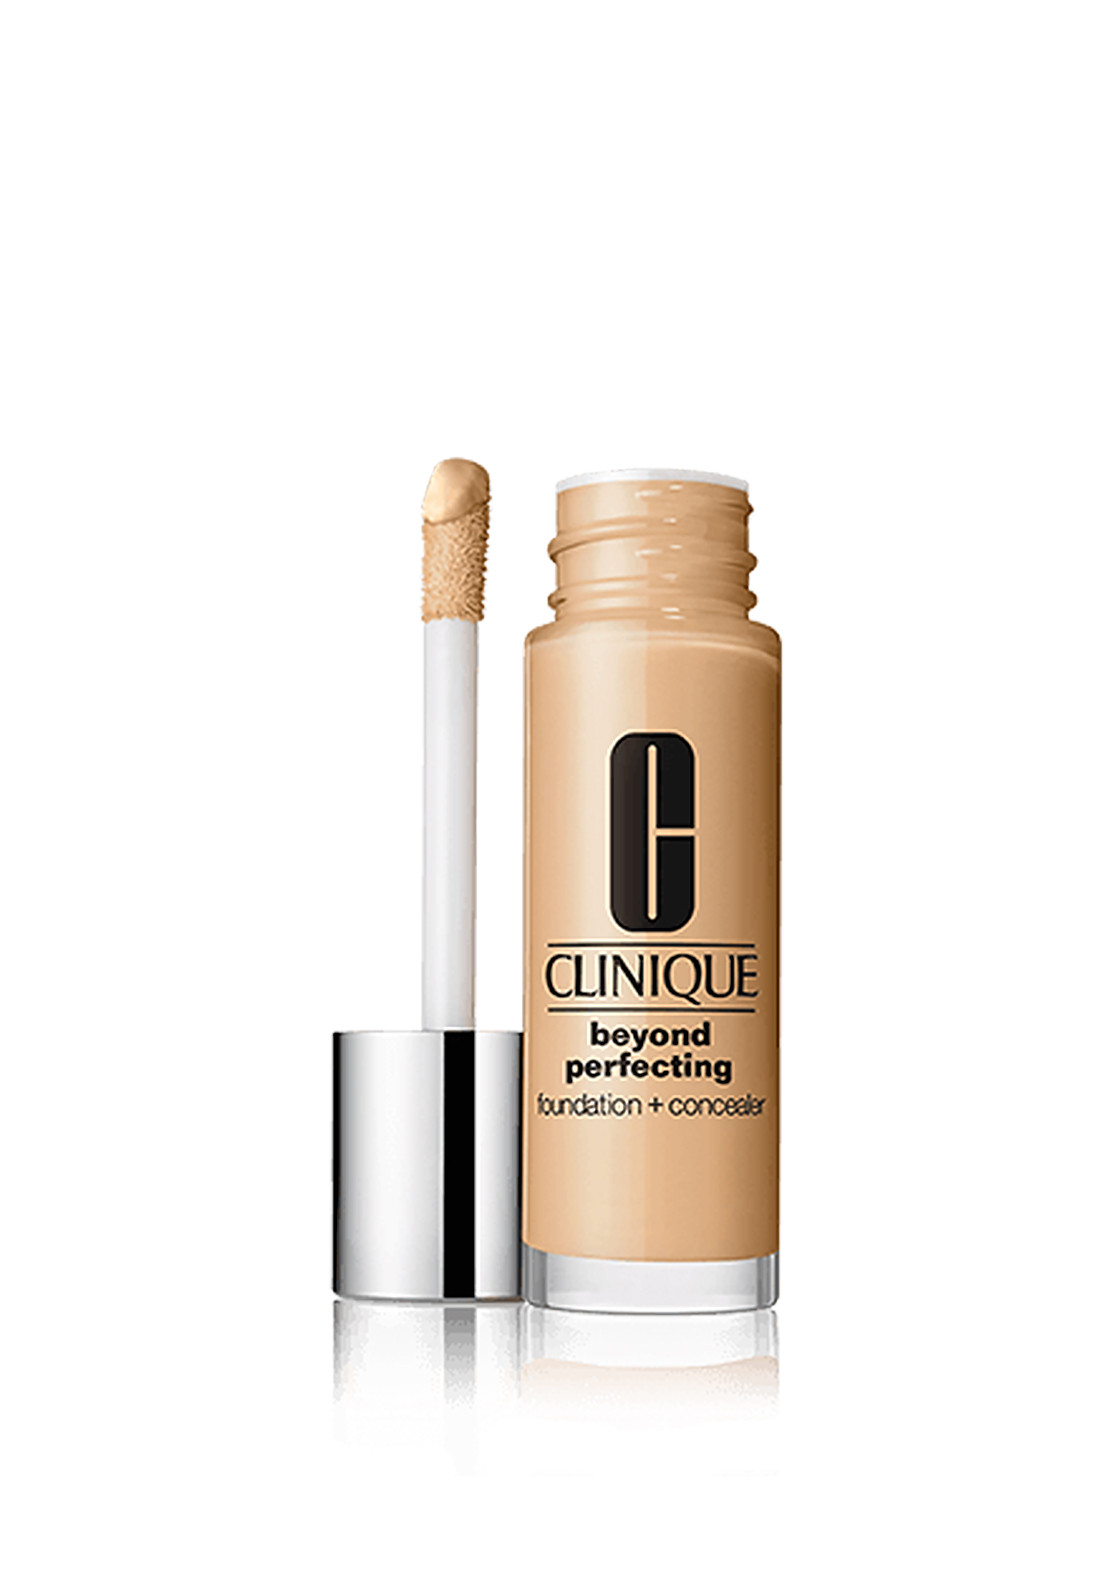 Clinique Beyond Perfecting ™ Foundation and Concealer, Golden Neutral